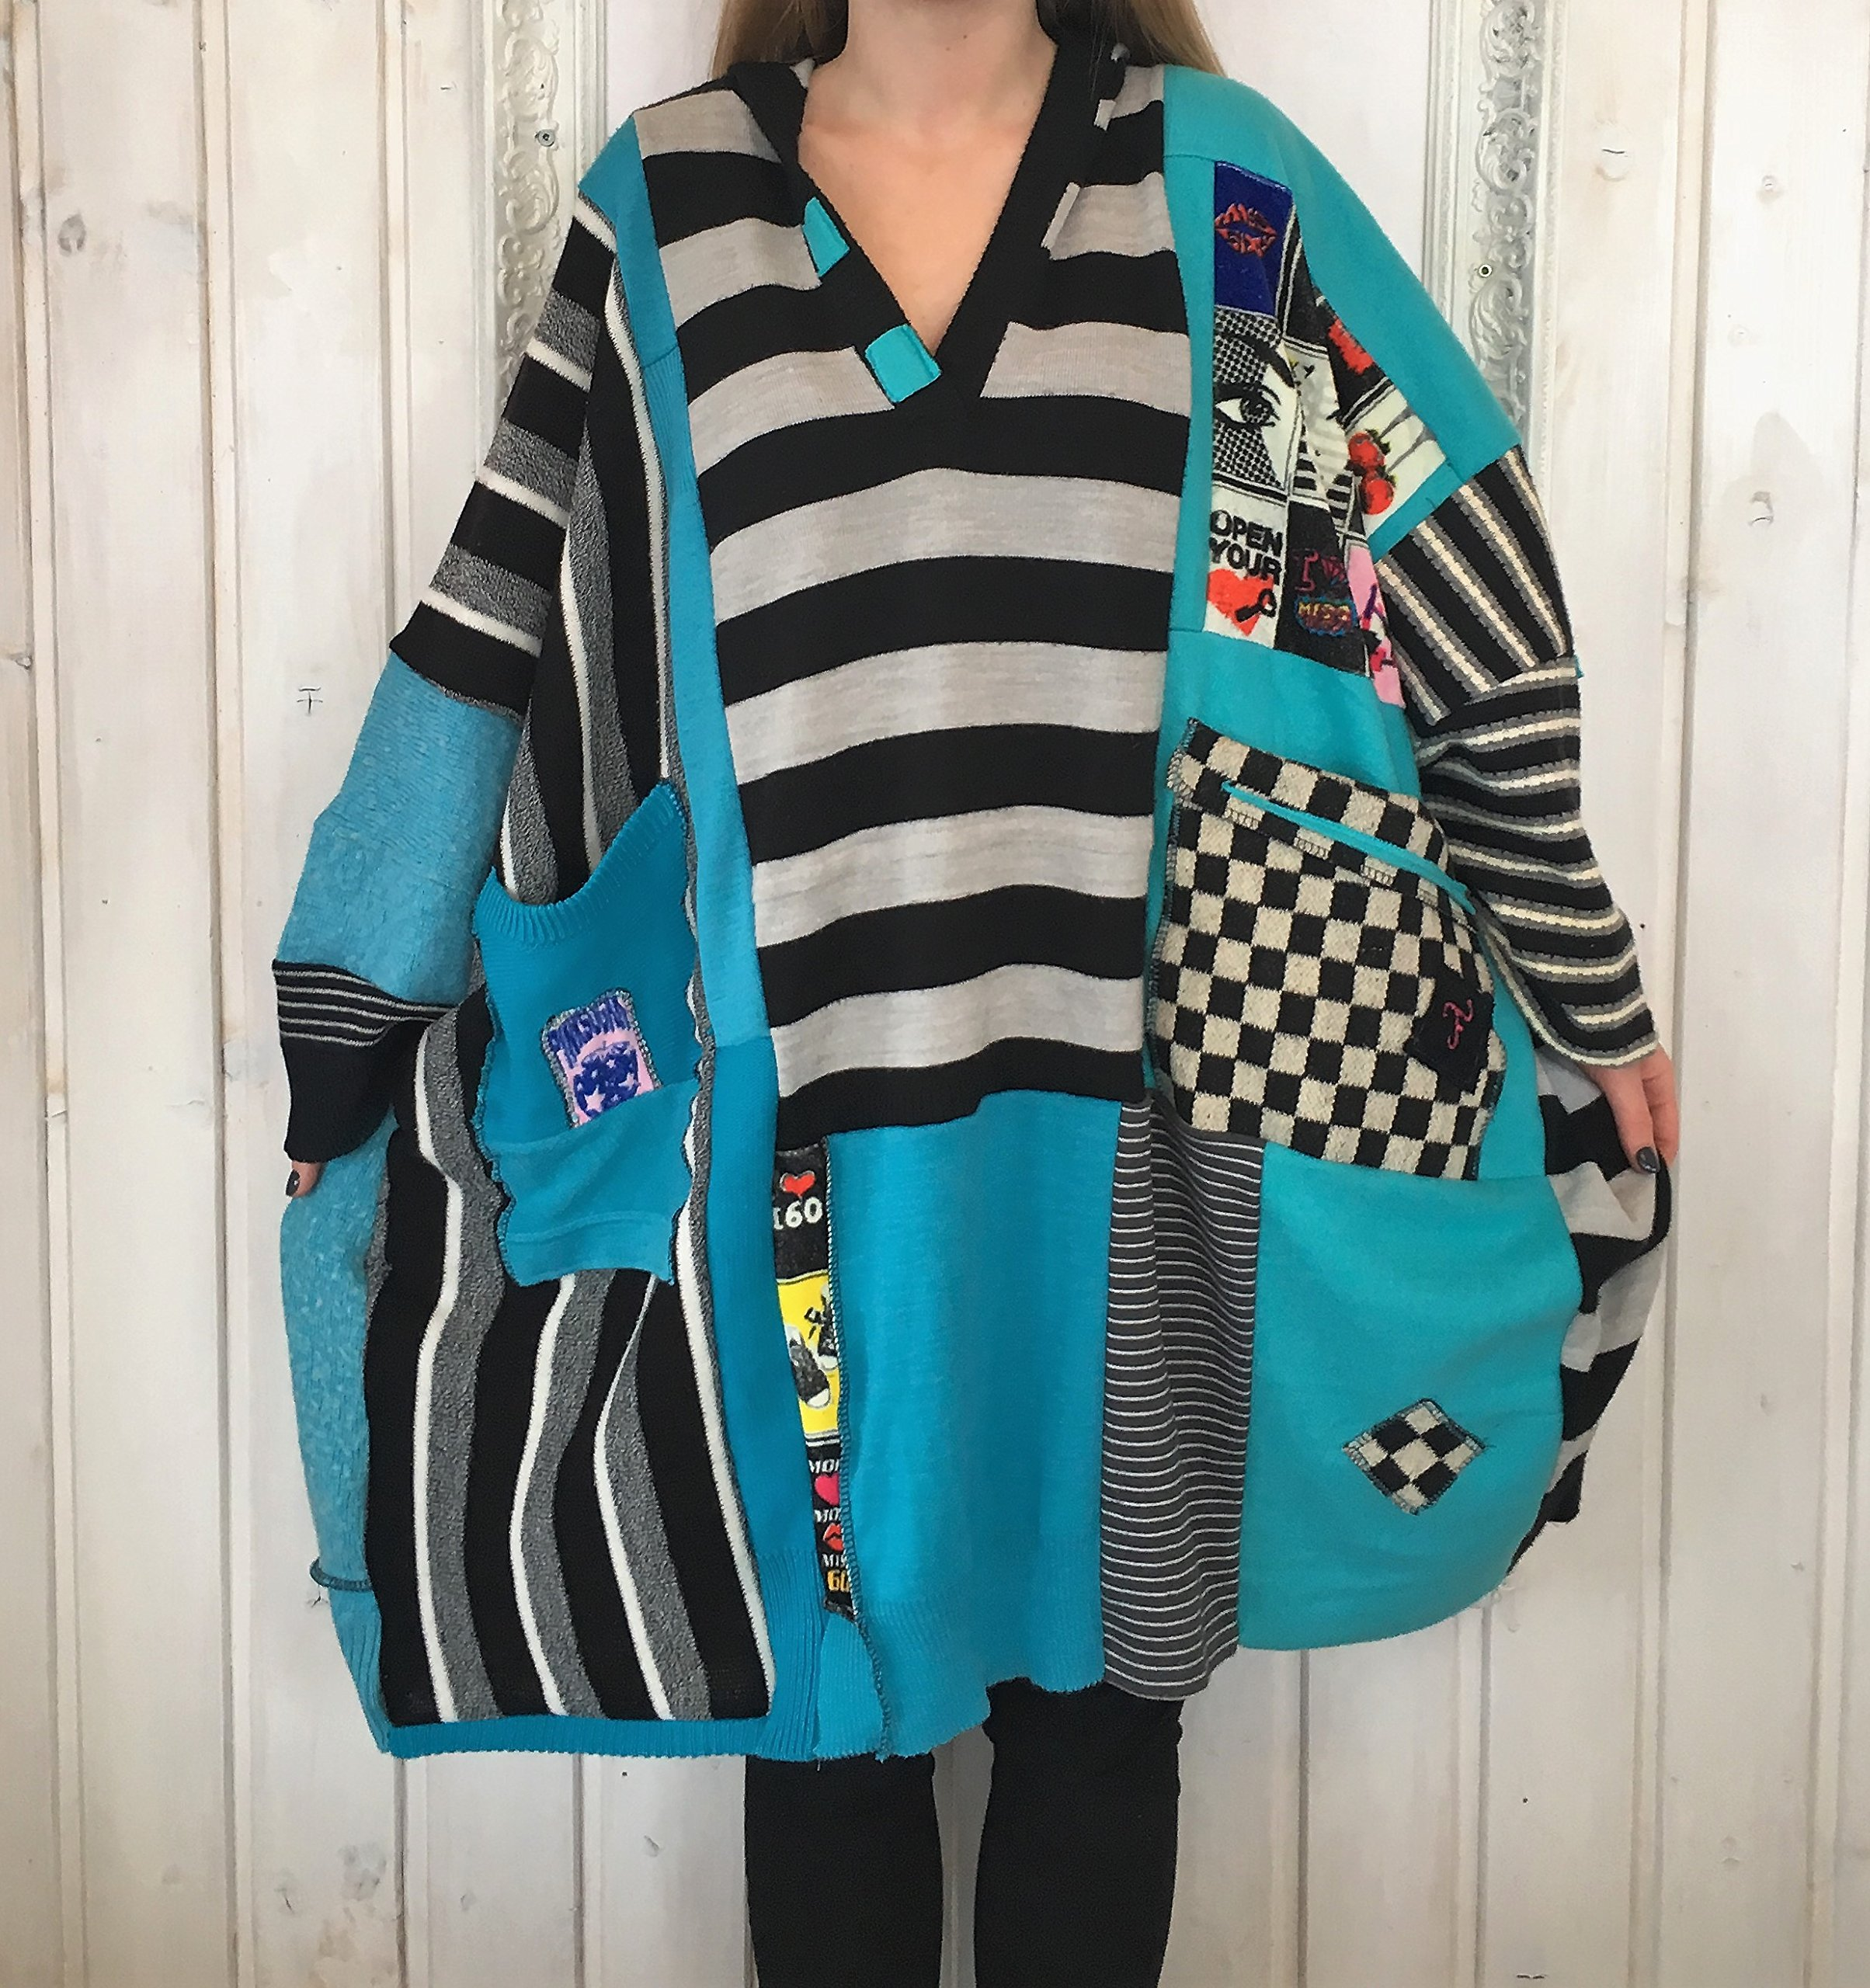 All sizes Woolen One of a kind Poncho coat Turquise Stripes Black